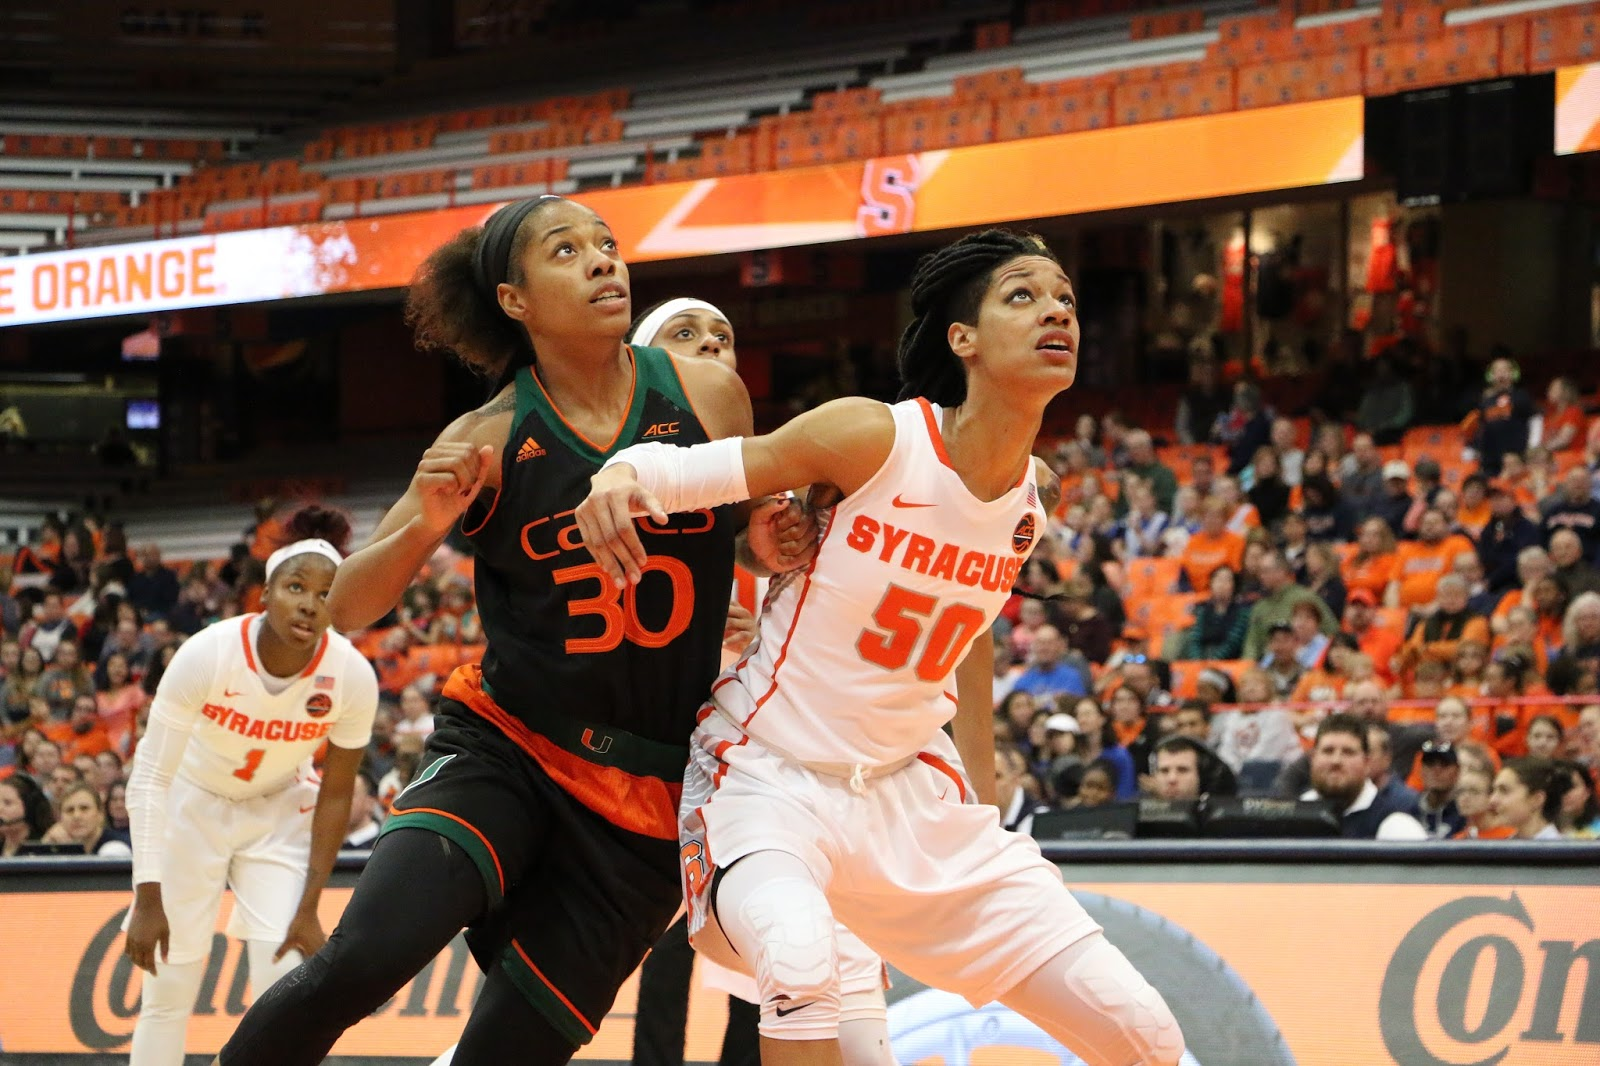 Orange Women Blow Out No. 14 'Canes